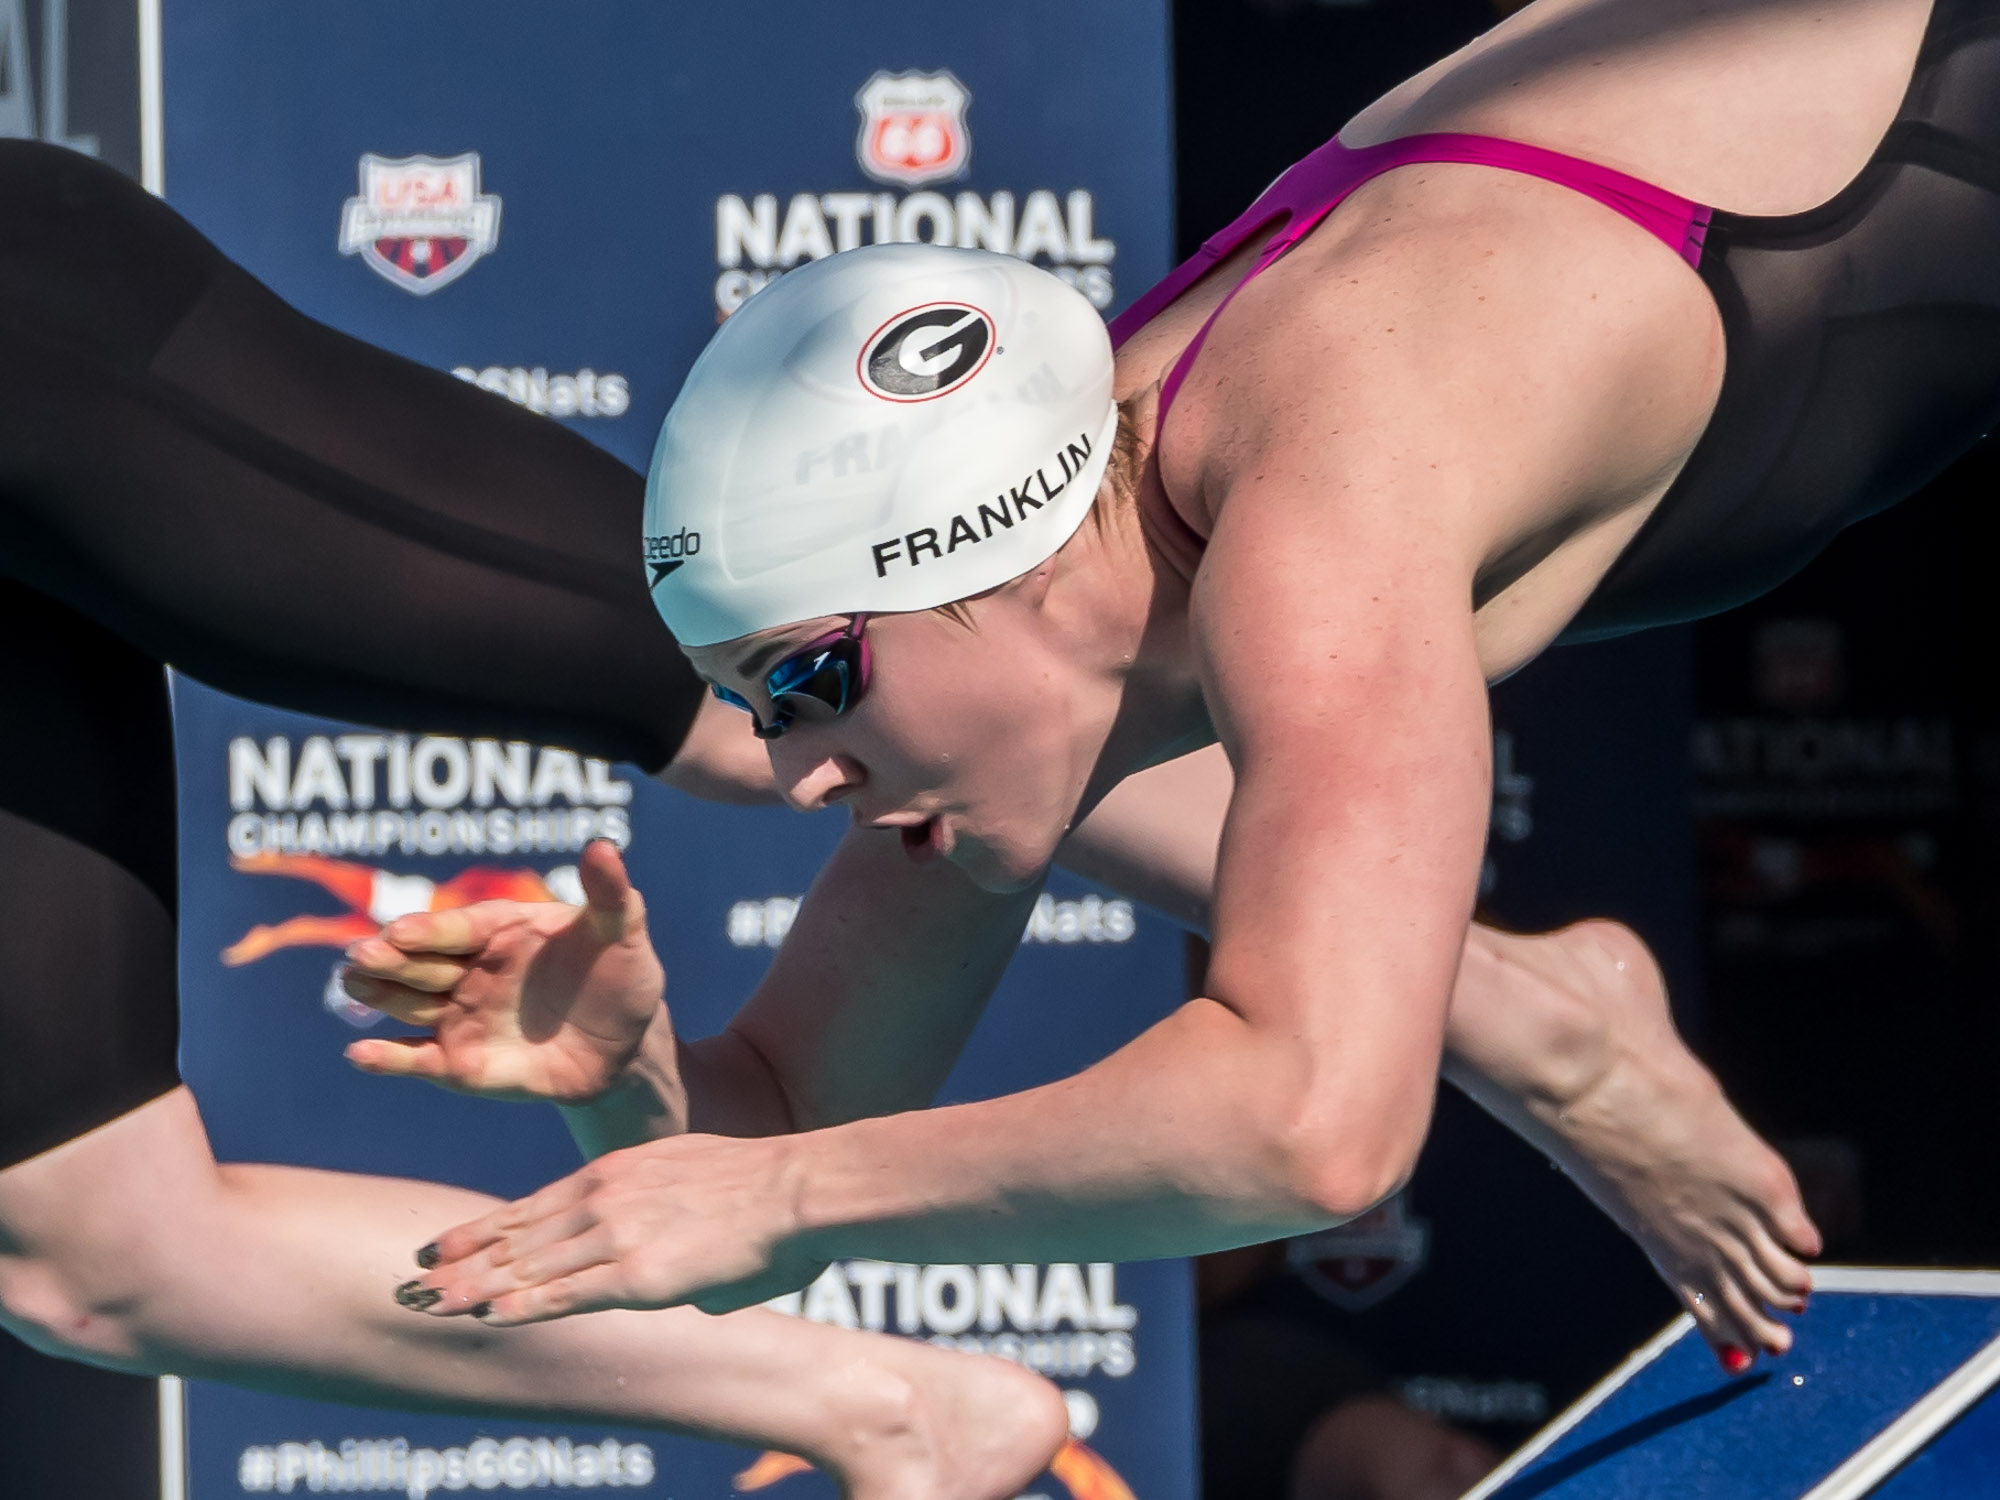 a843674b1ea 2012 Olympic Champion Missy Franklin Announces Retirement - Swimming ...